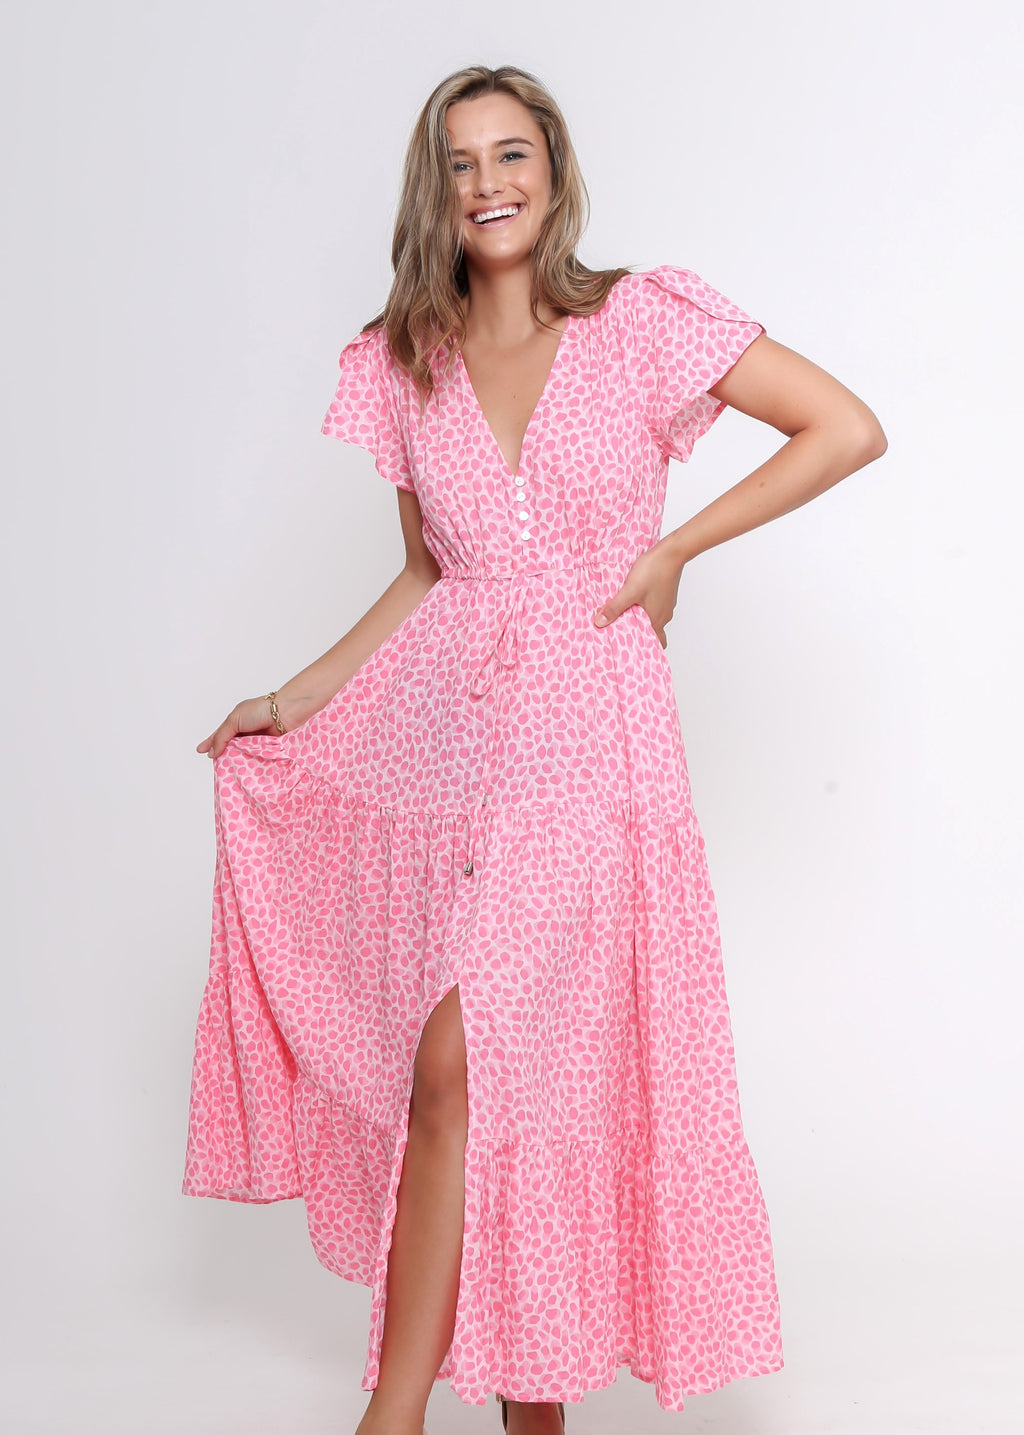 SUNNY MAXI DRESS - PINK PRINT - LAST STOCK